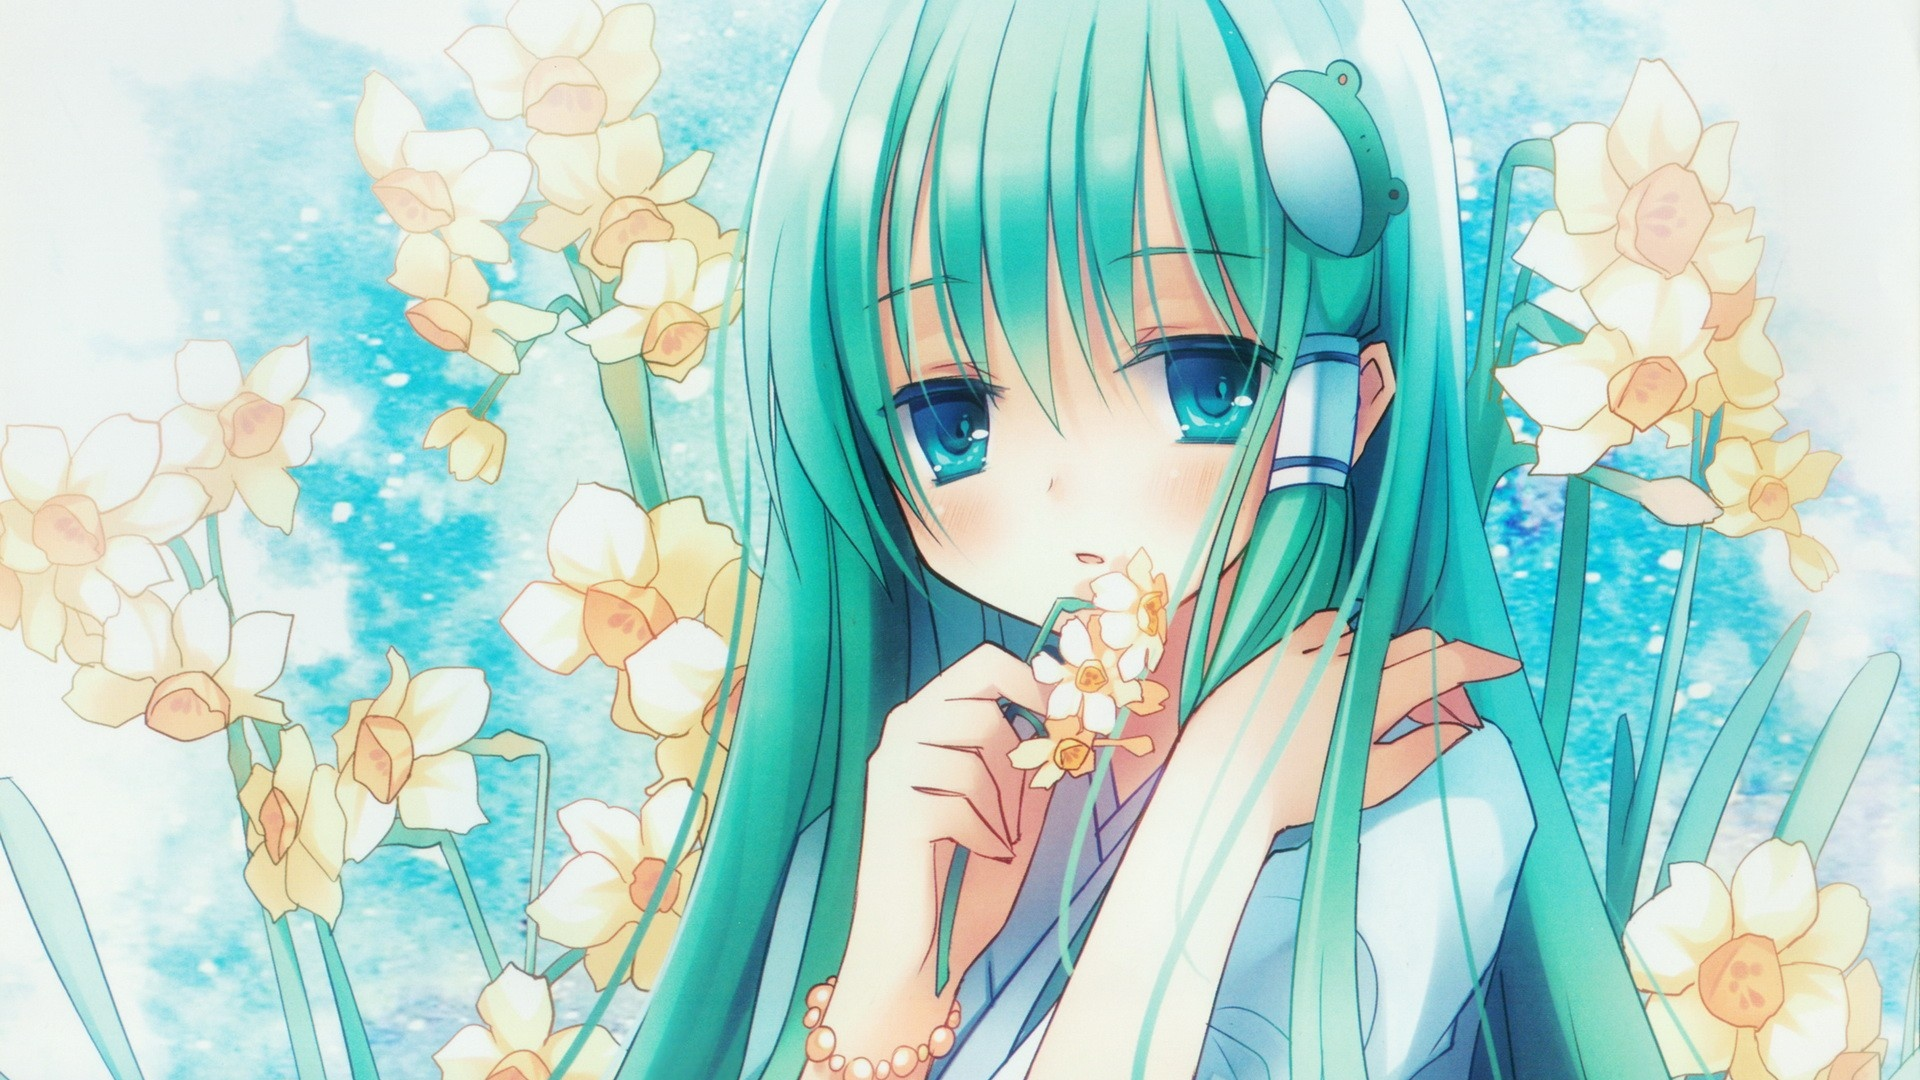 Anime Girl Turquoise Hair - 10x10 - Download HD Wallpaper